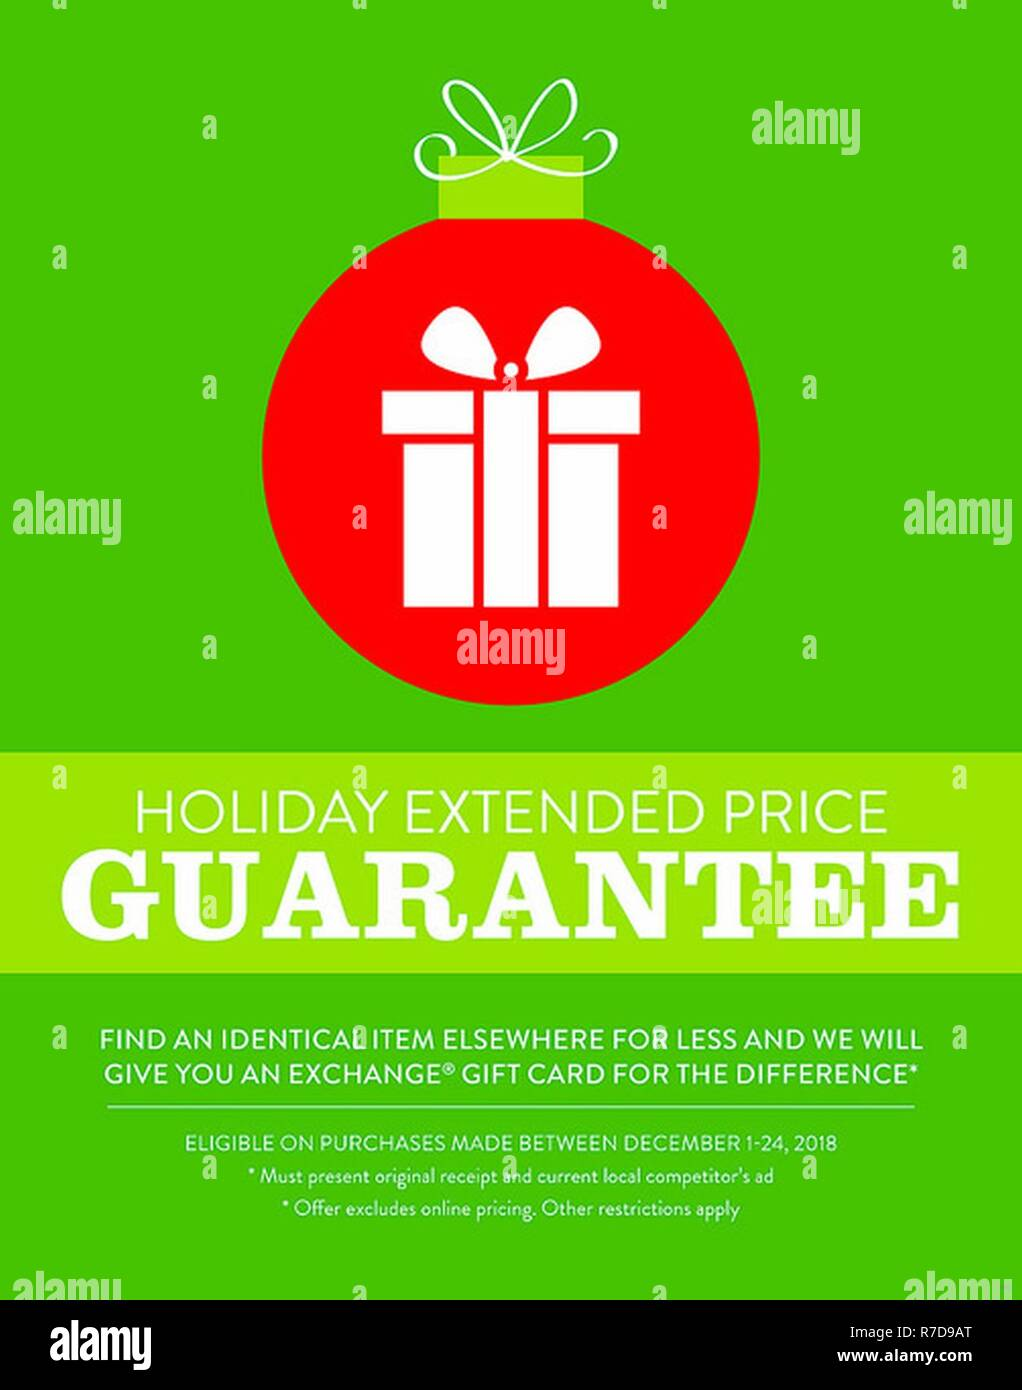 The Army & Air Force Exchange Service is making sure that Warfighters and their families get the lowest price this holiday season with an extended price guarantee. - Stock Image